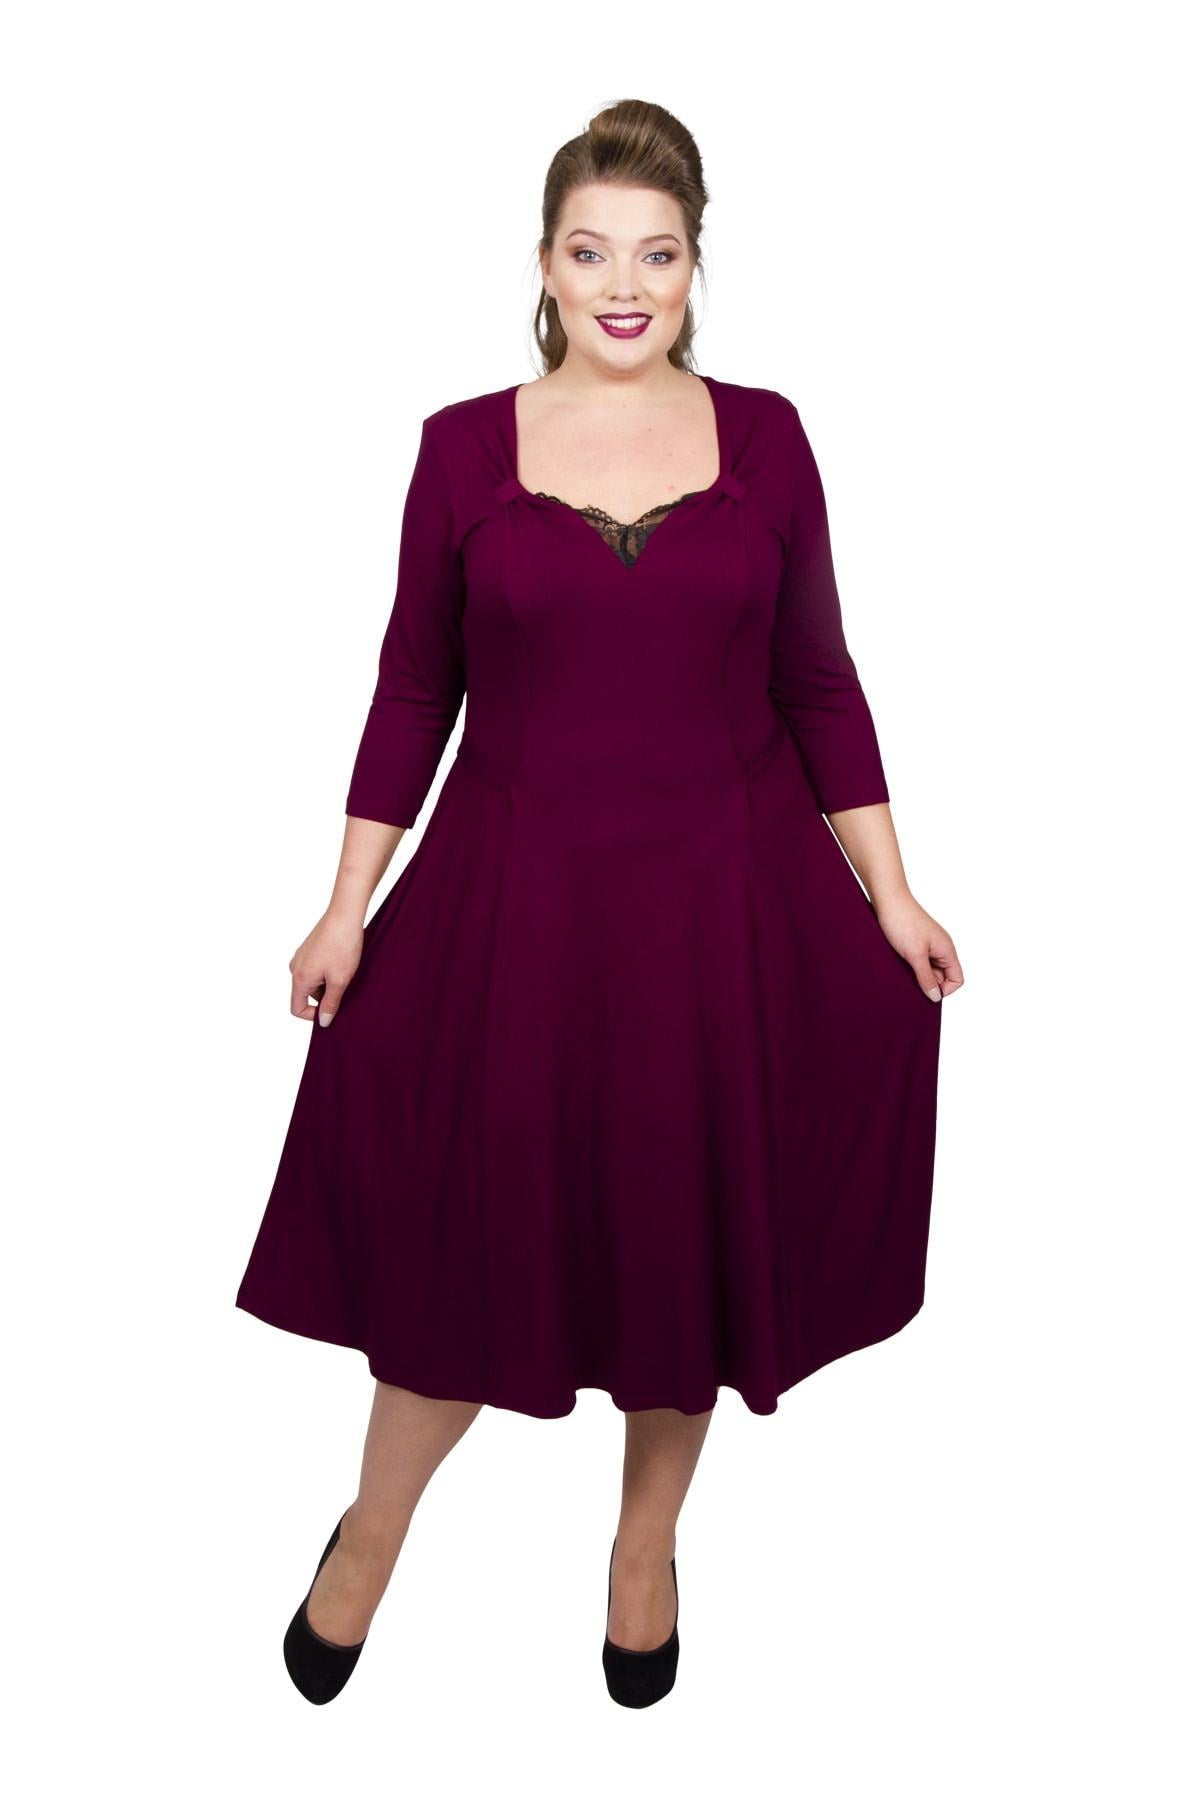 1940s Dresses and Clothing UK | 40s Shoes UK Lace Sweetheart Tab 40s Dress - Burgundy  16 £55.00 AT vintagedancer.com